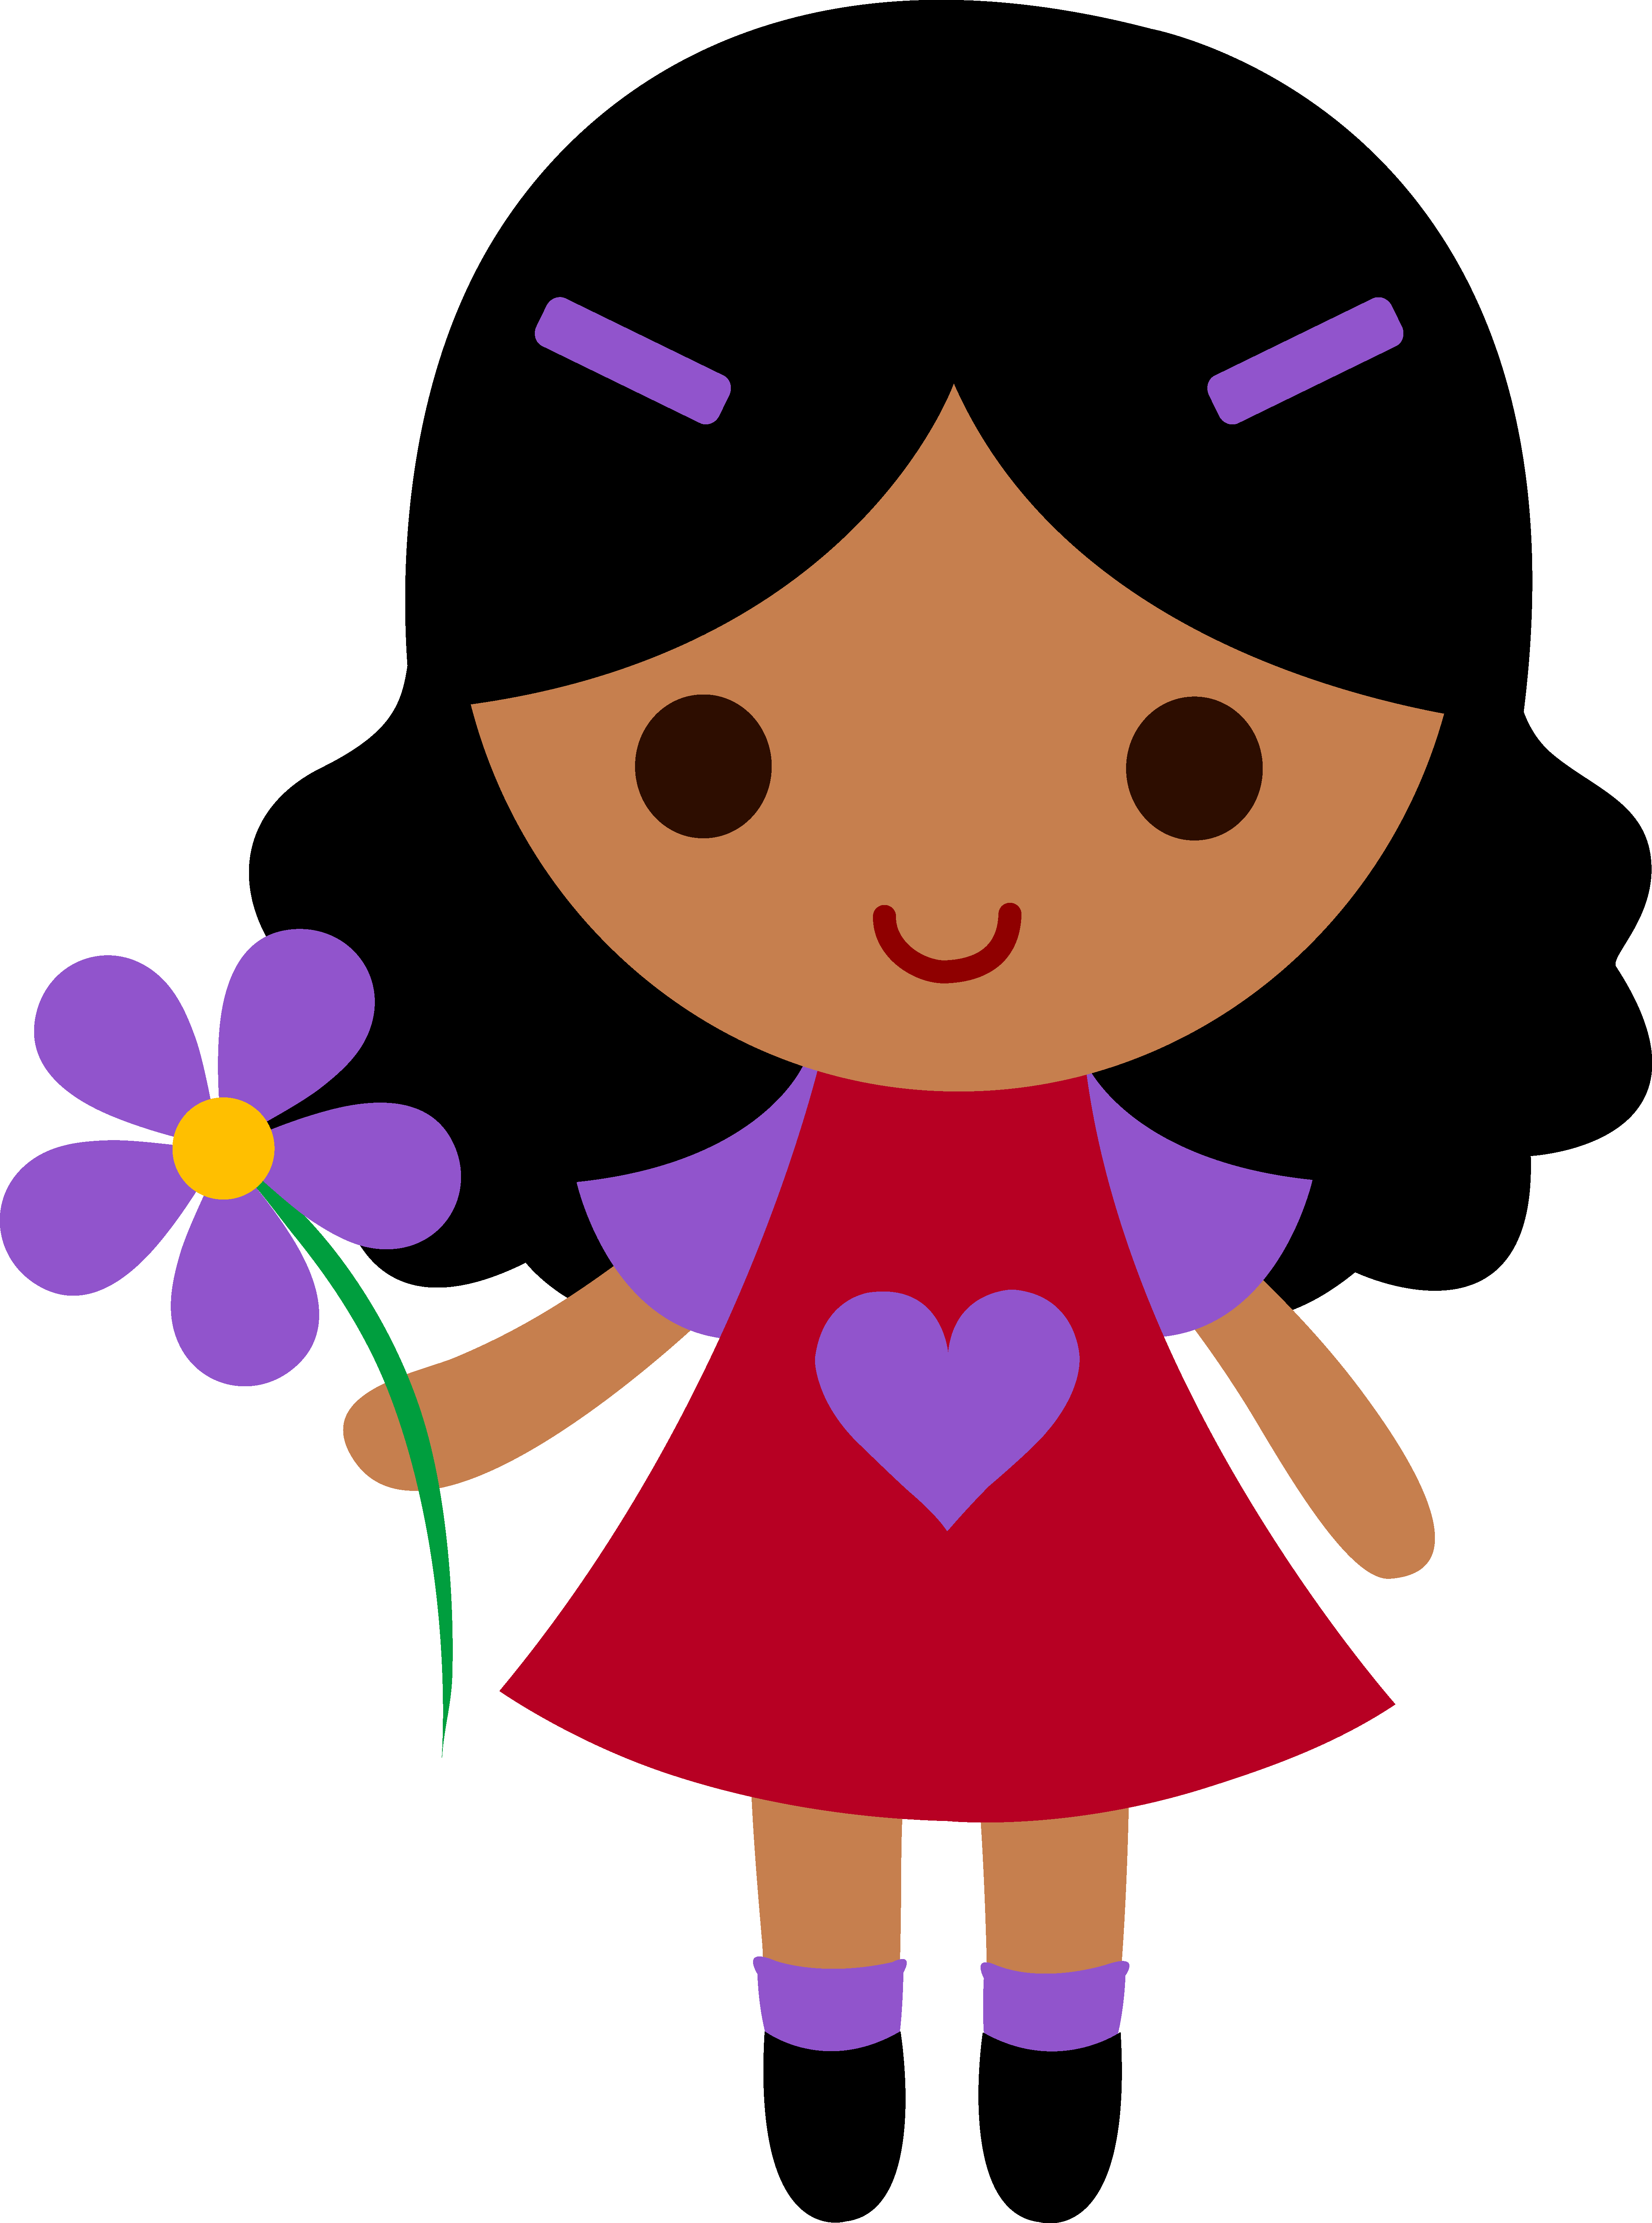 clipart little girl face - photo #44